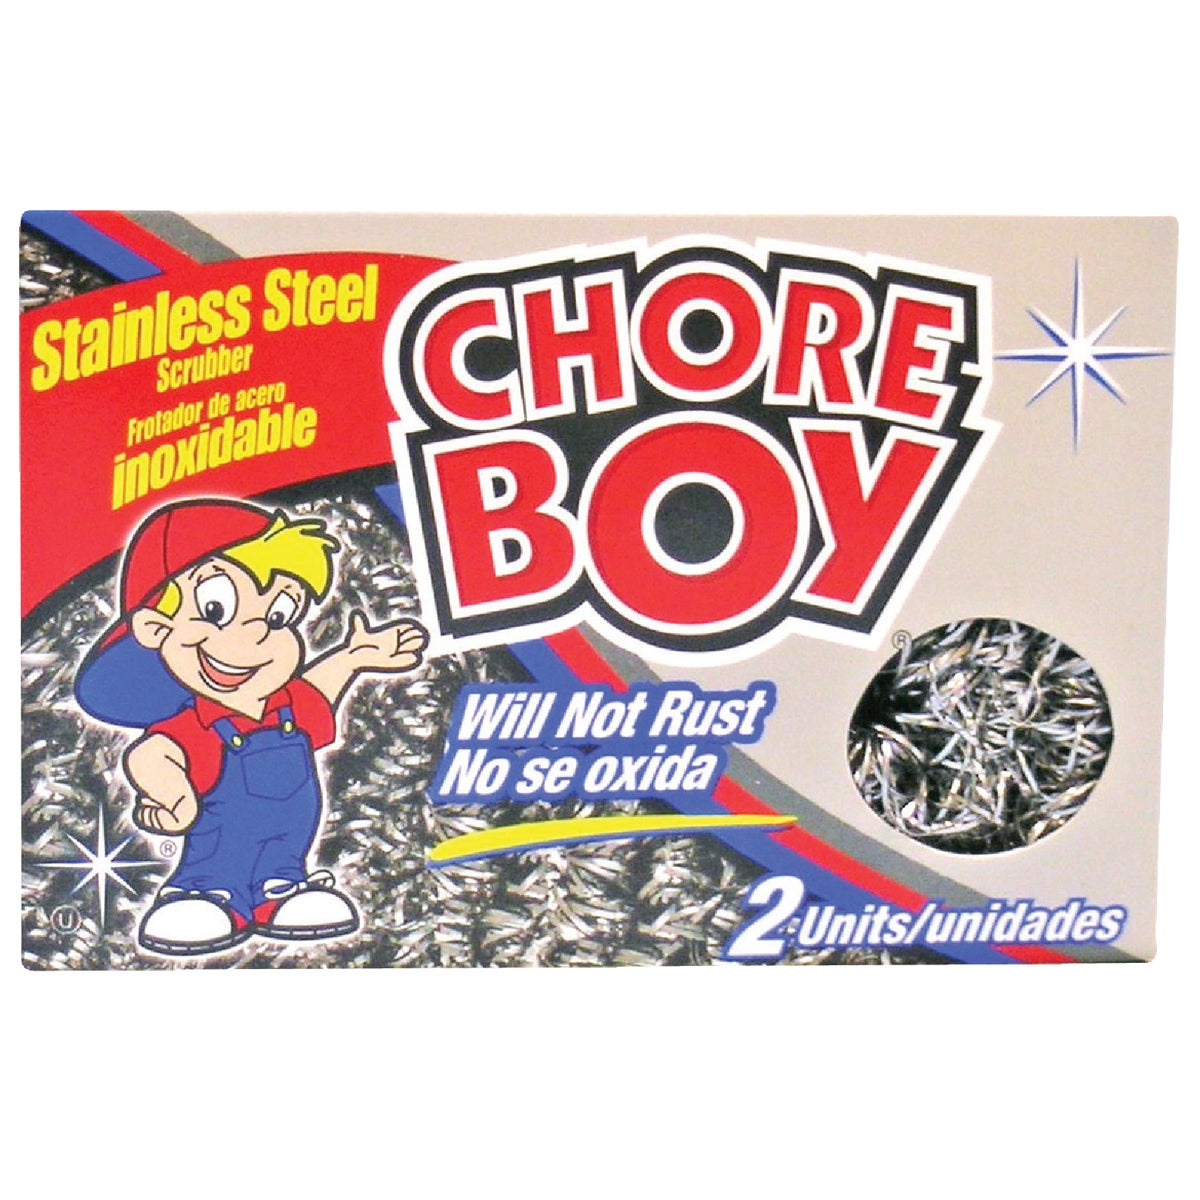 SS CHORE BOY - 00218 by Spic & Span Co